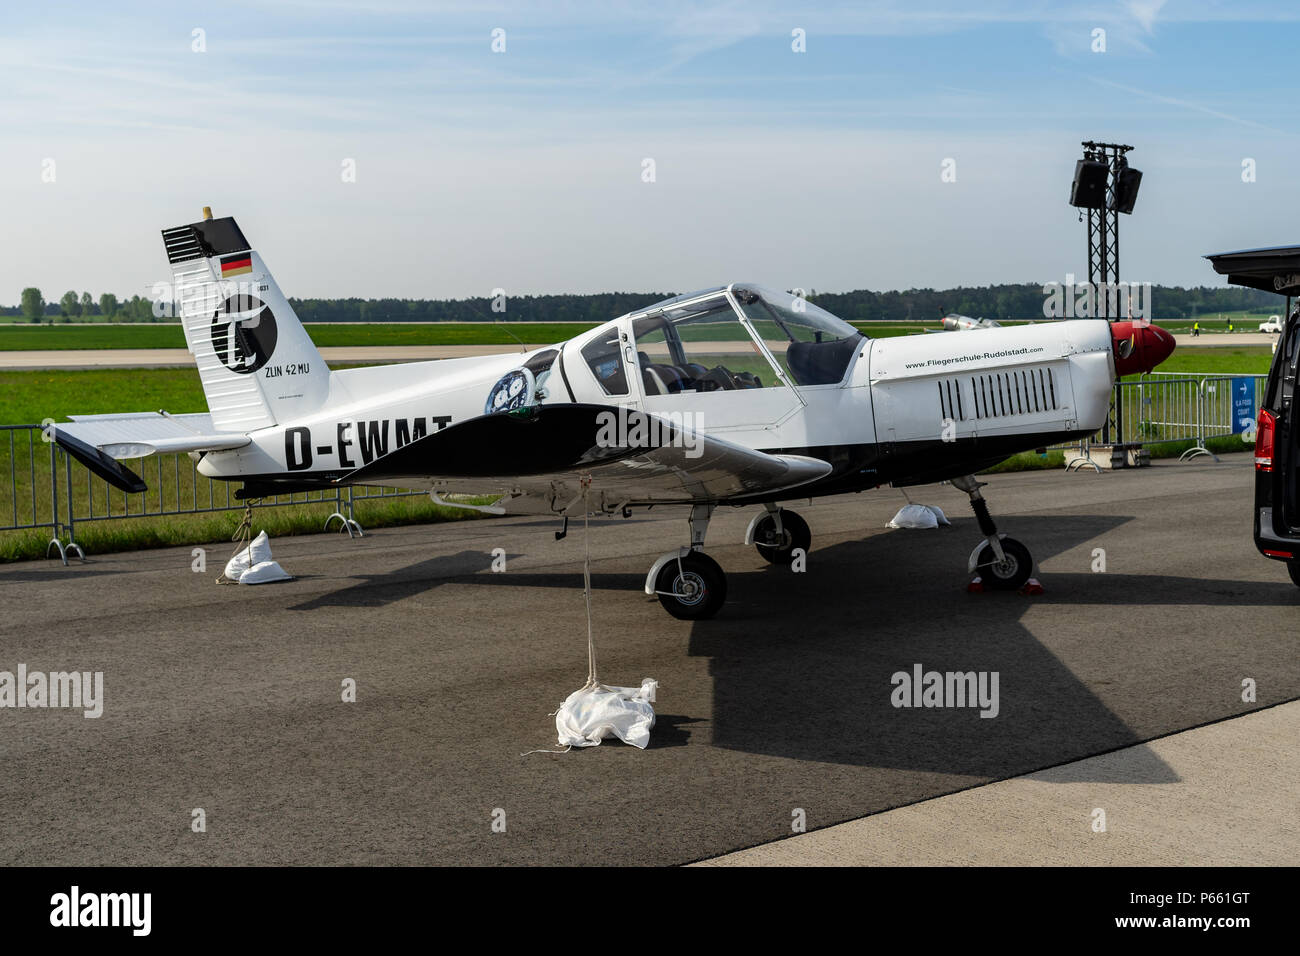 BERLIN - APRIL 27, 2018: Czech single-engine two-seat sport, personal and trainer aircraft Zlin Z42MU. Exhibition ILA Berlin Air Show 2018. - Stock Image